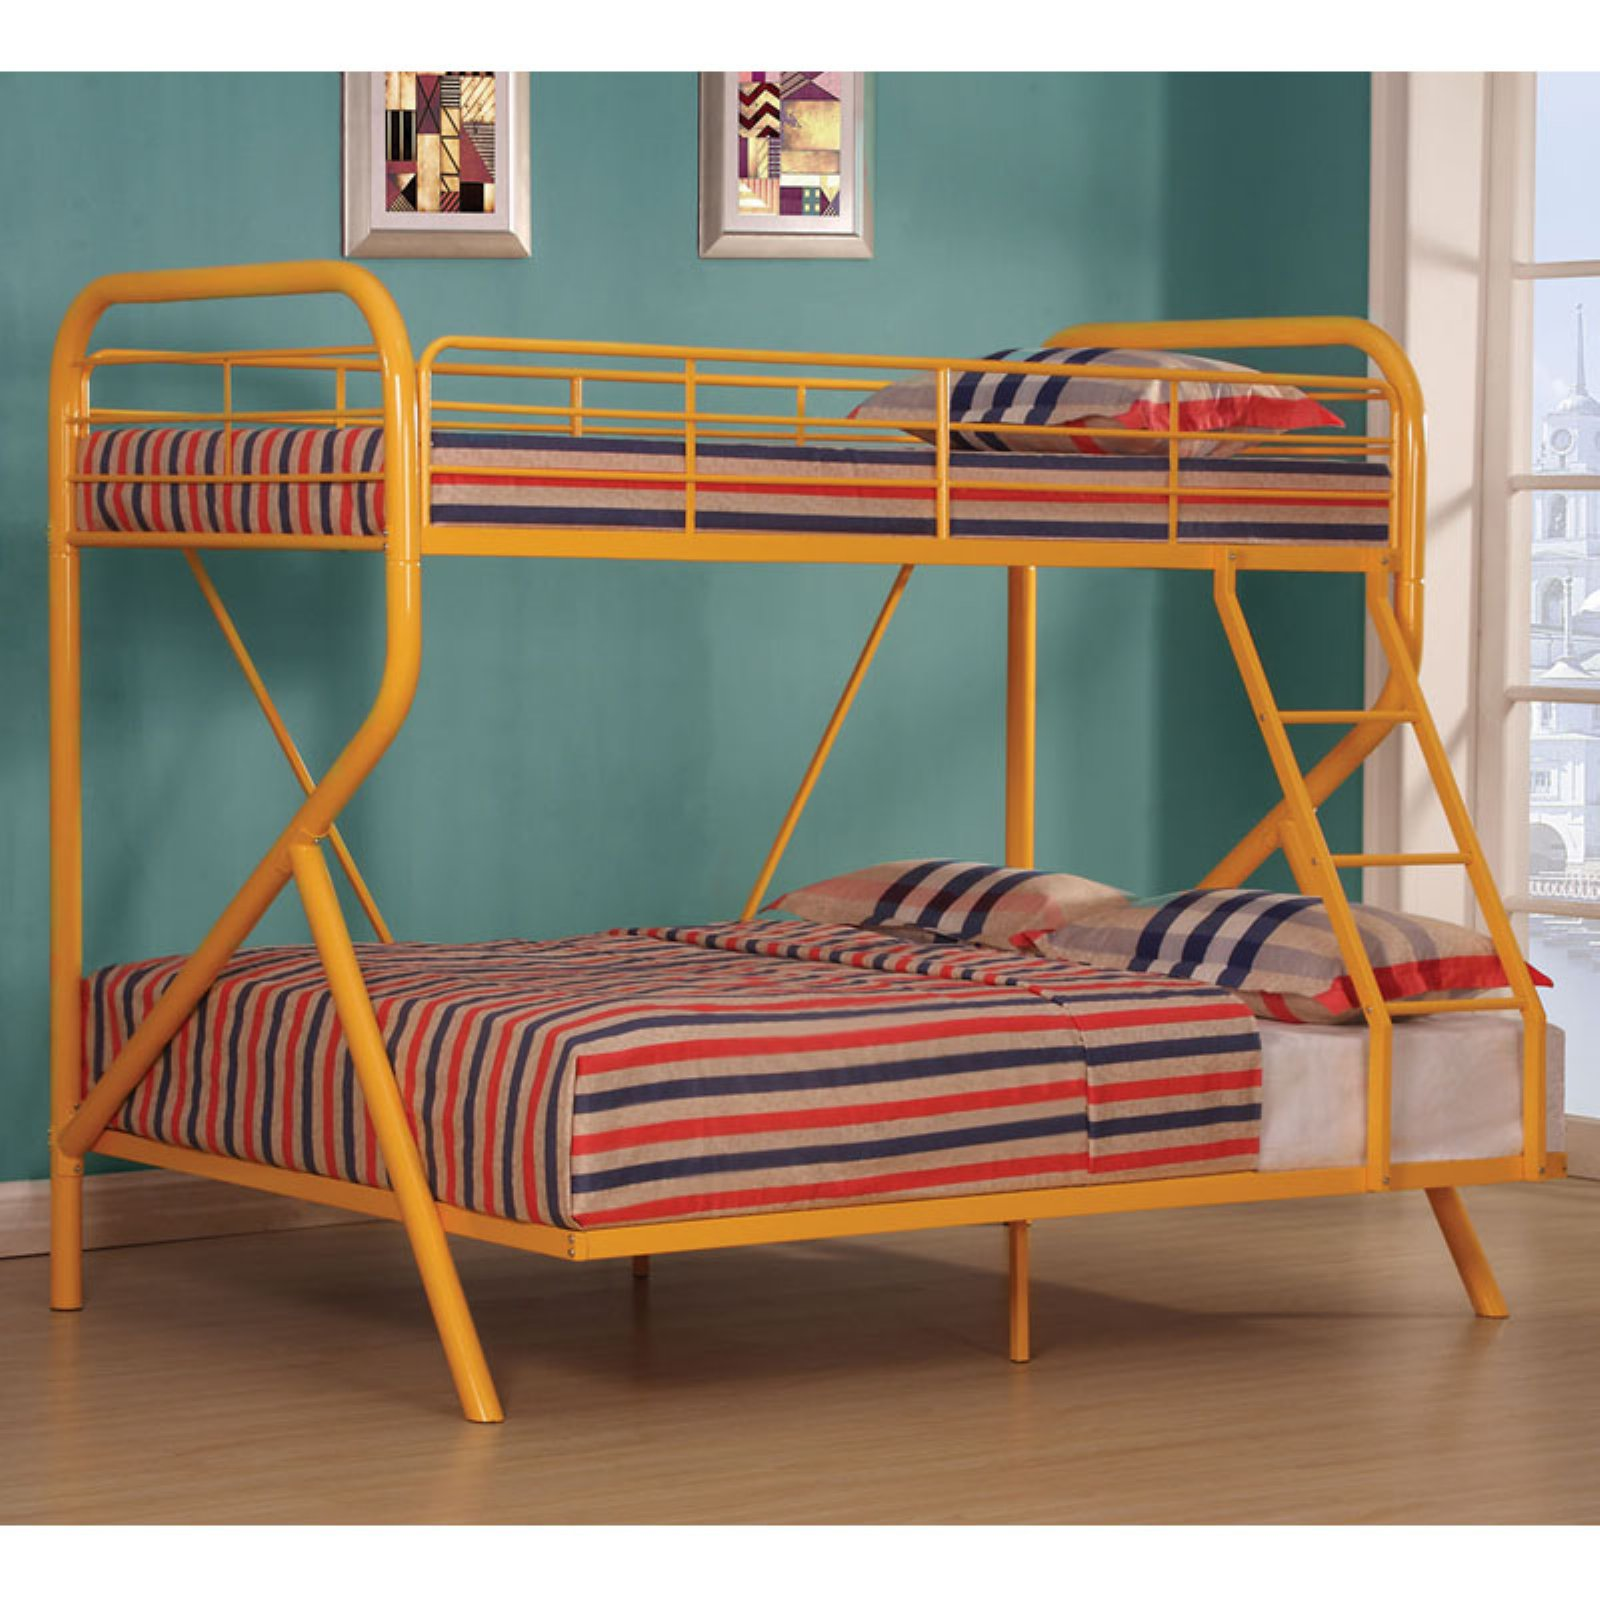 Acme Tracy Twin Over Full Metal Bunk Bed Part 2, Orange (Box 2 of 2)